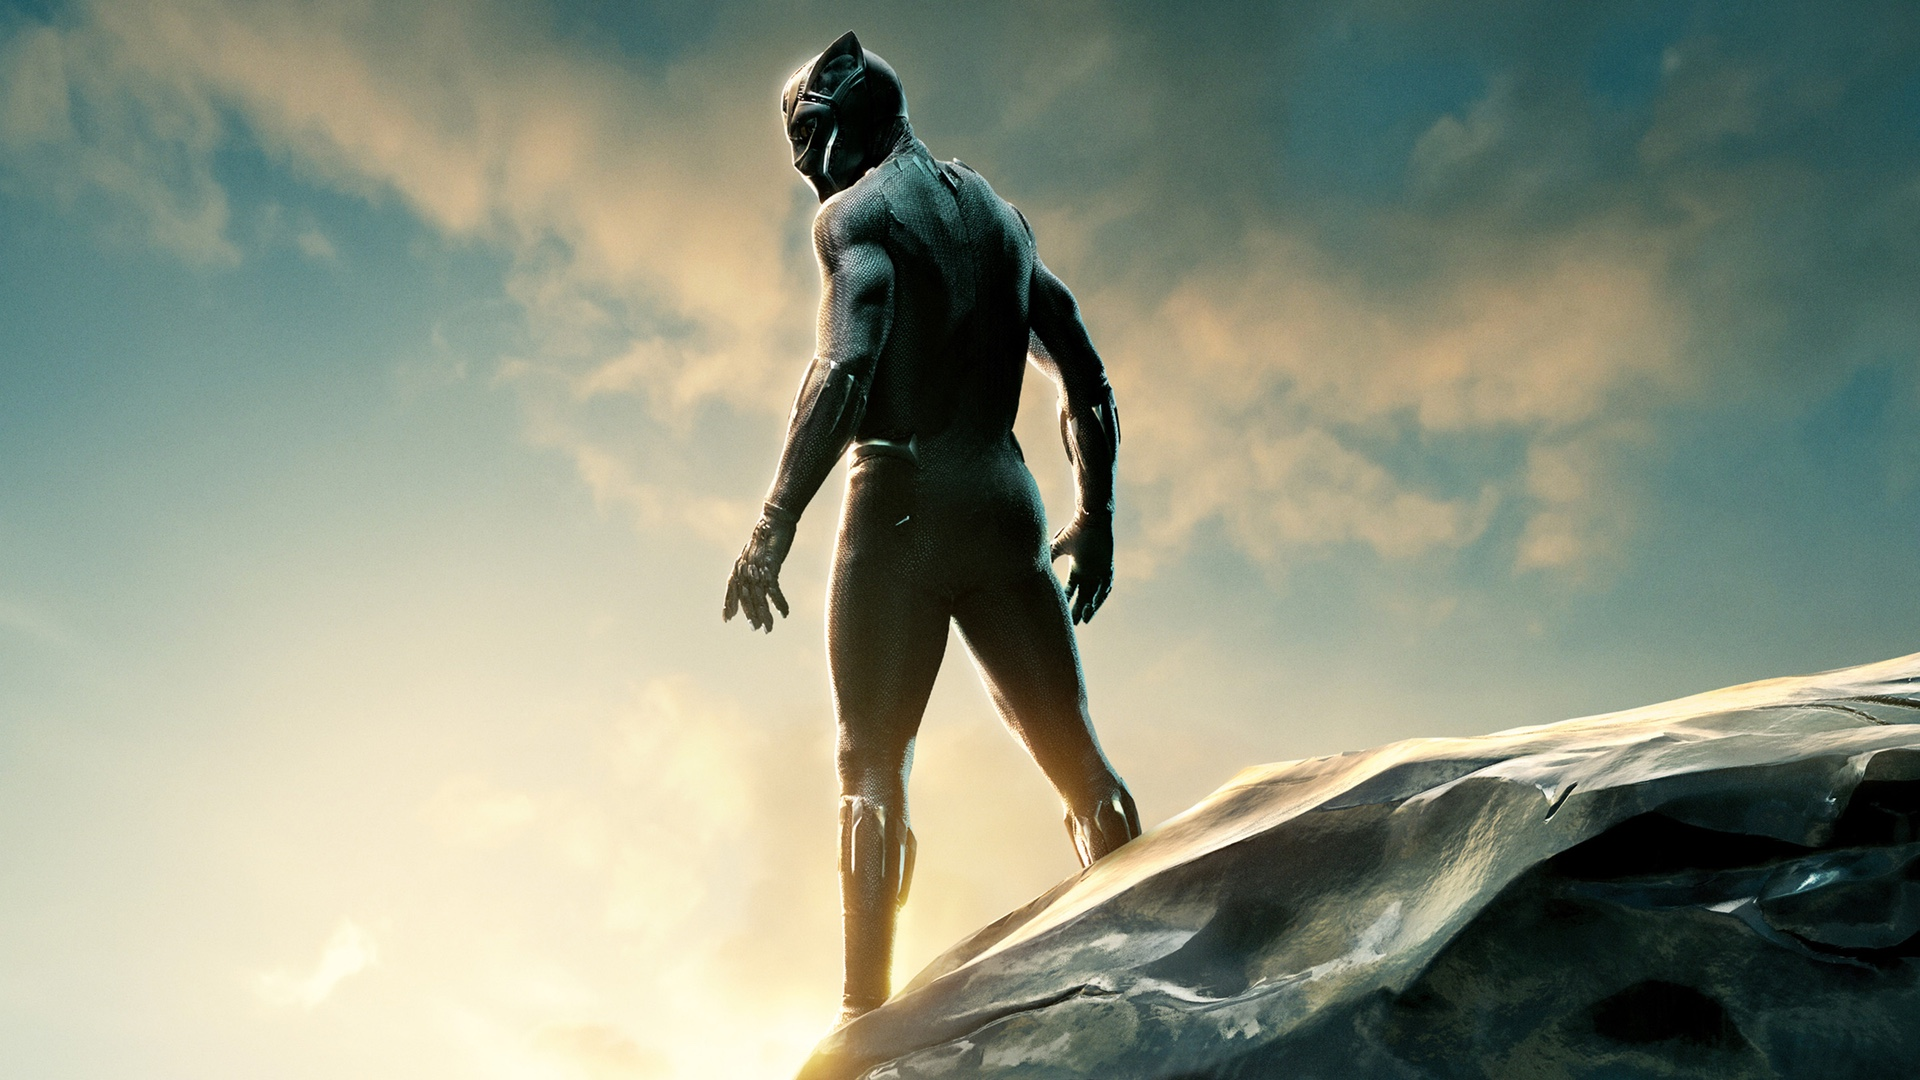 As Expected Marvel Is Pushing Black Panther For A Best Picture Oscar Nomination Geektyrant